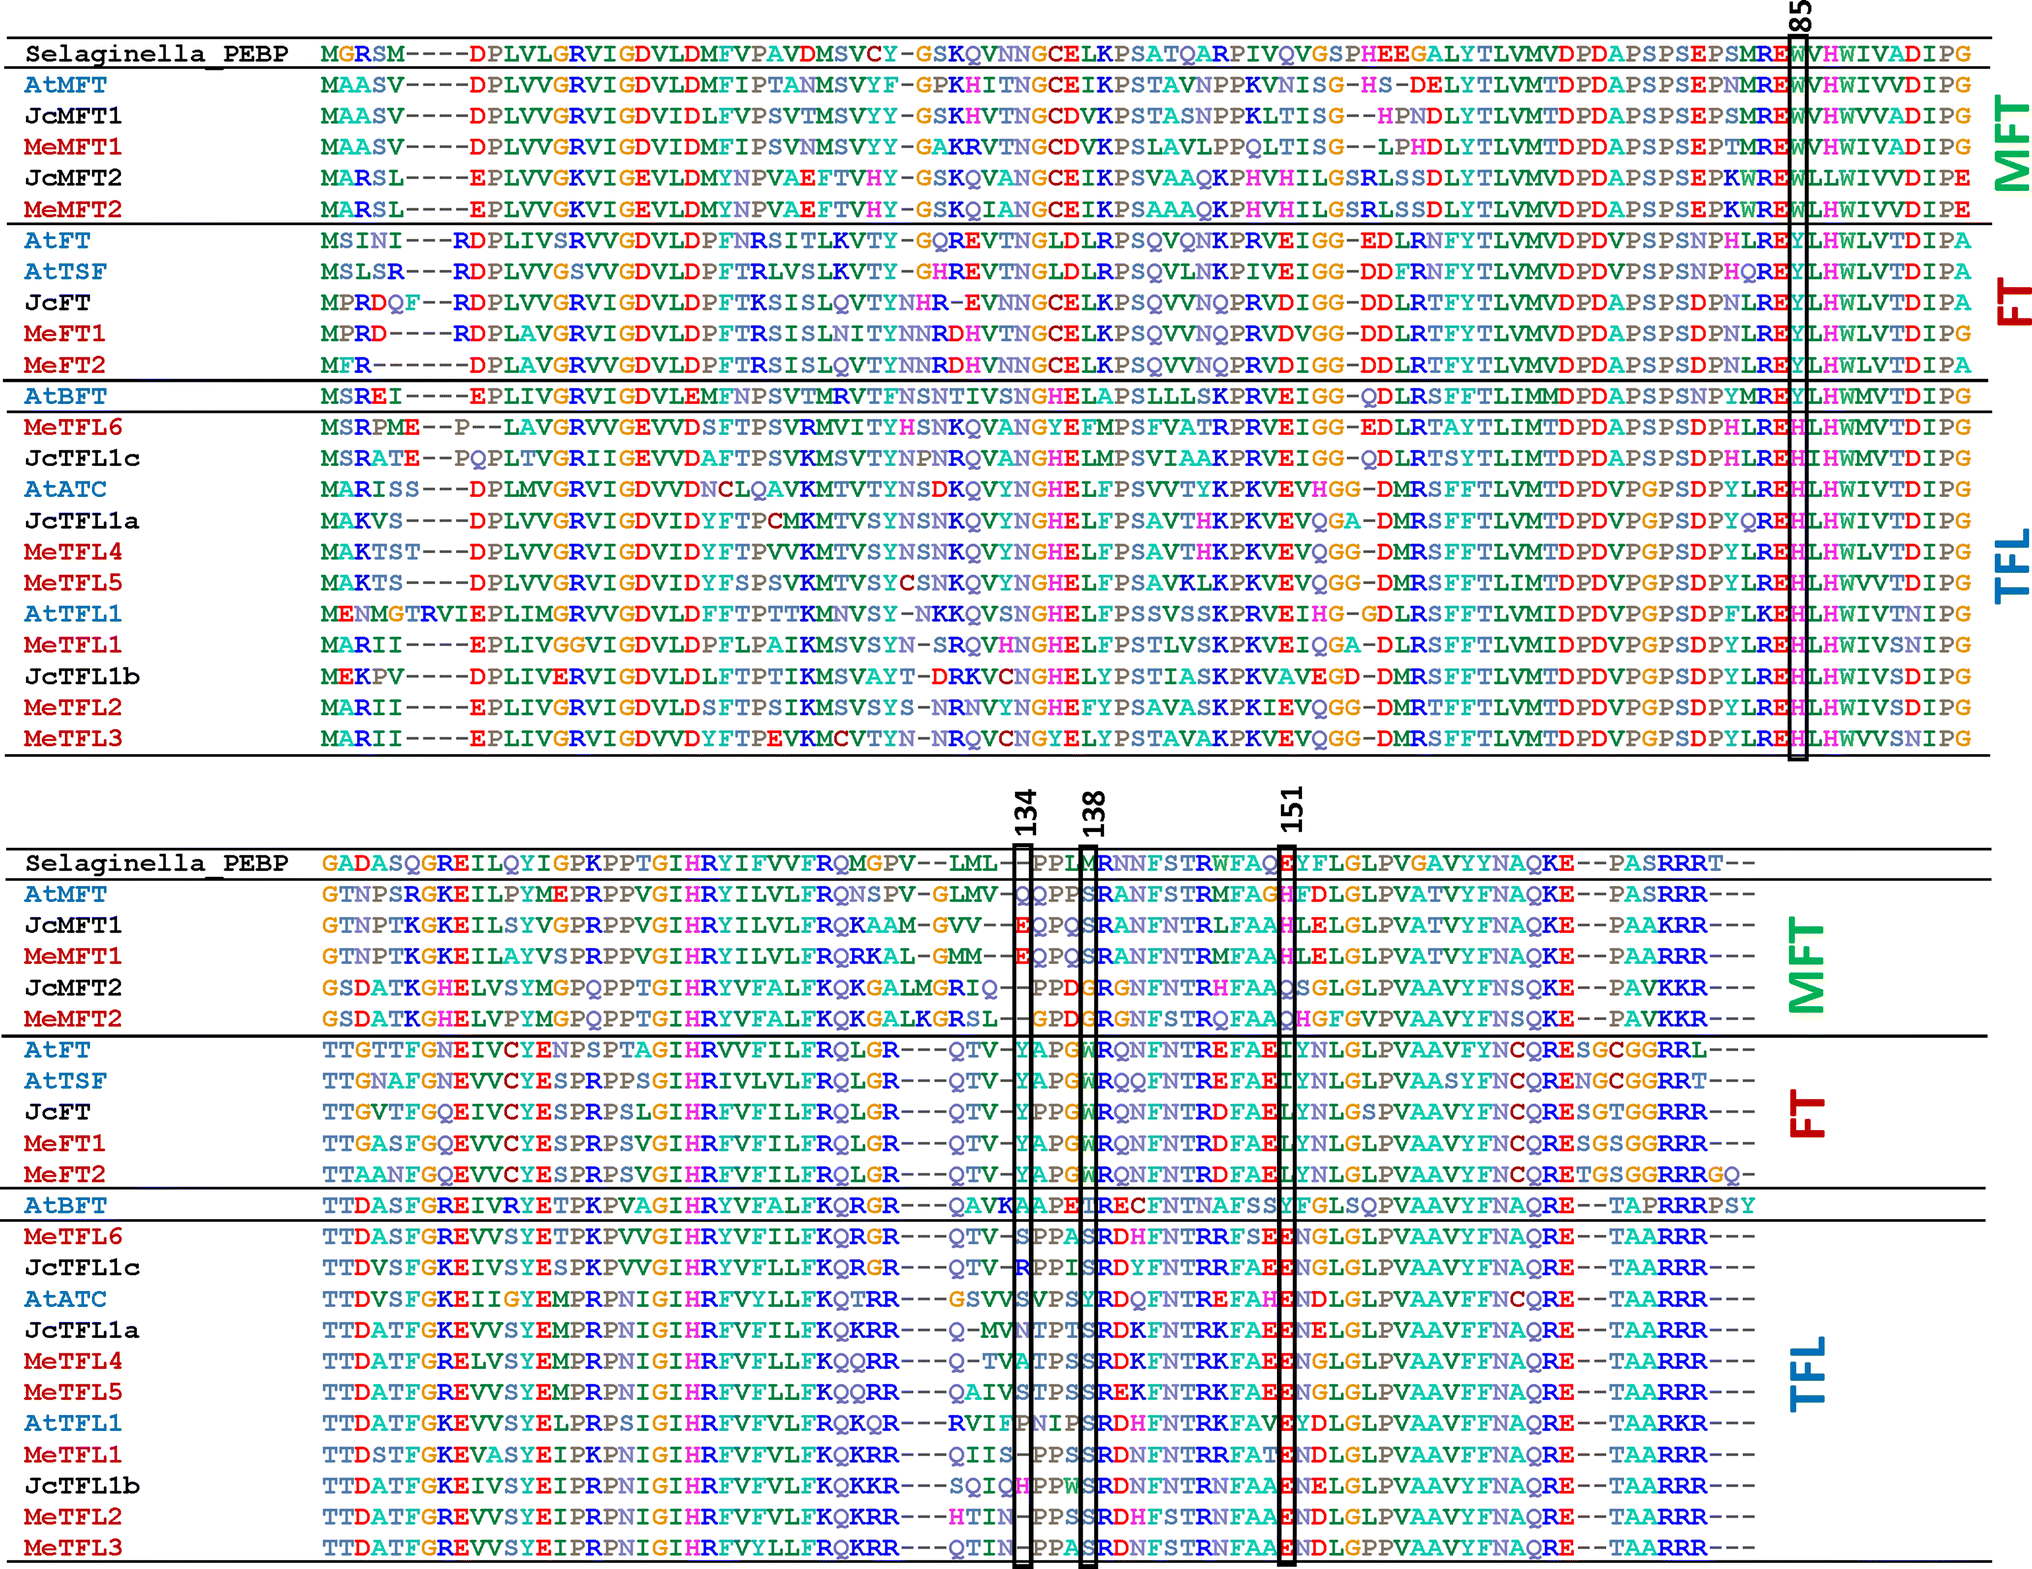 Identification of FT family genes that respond to